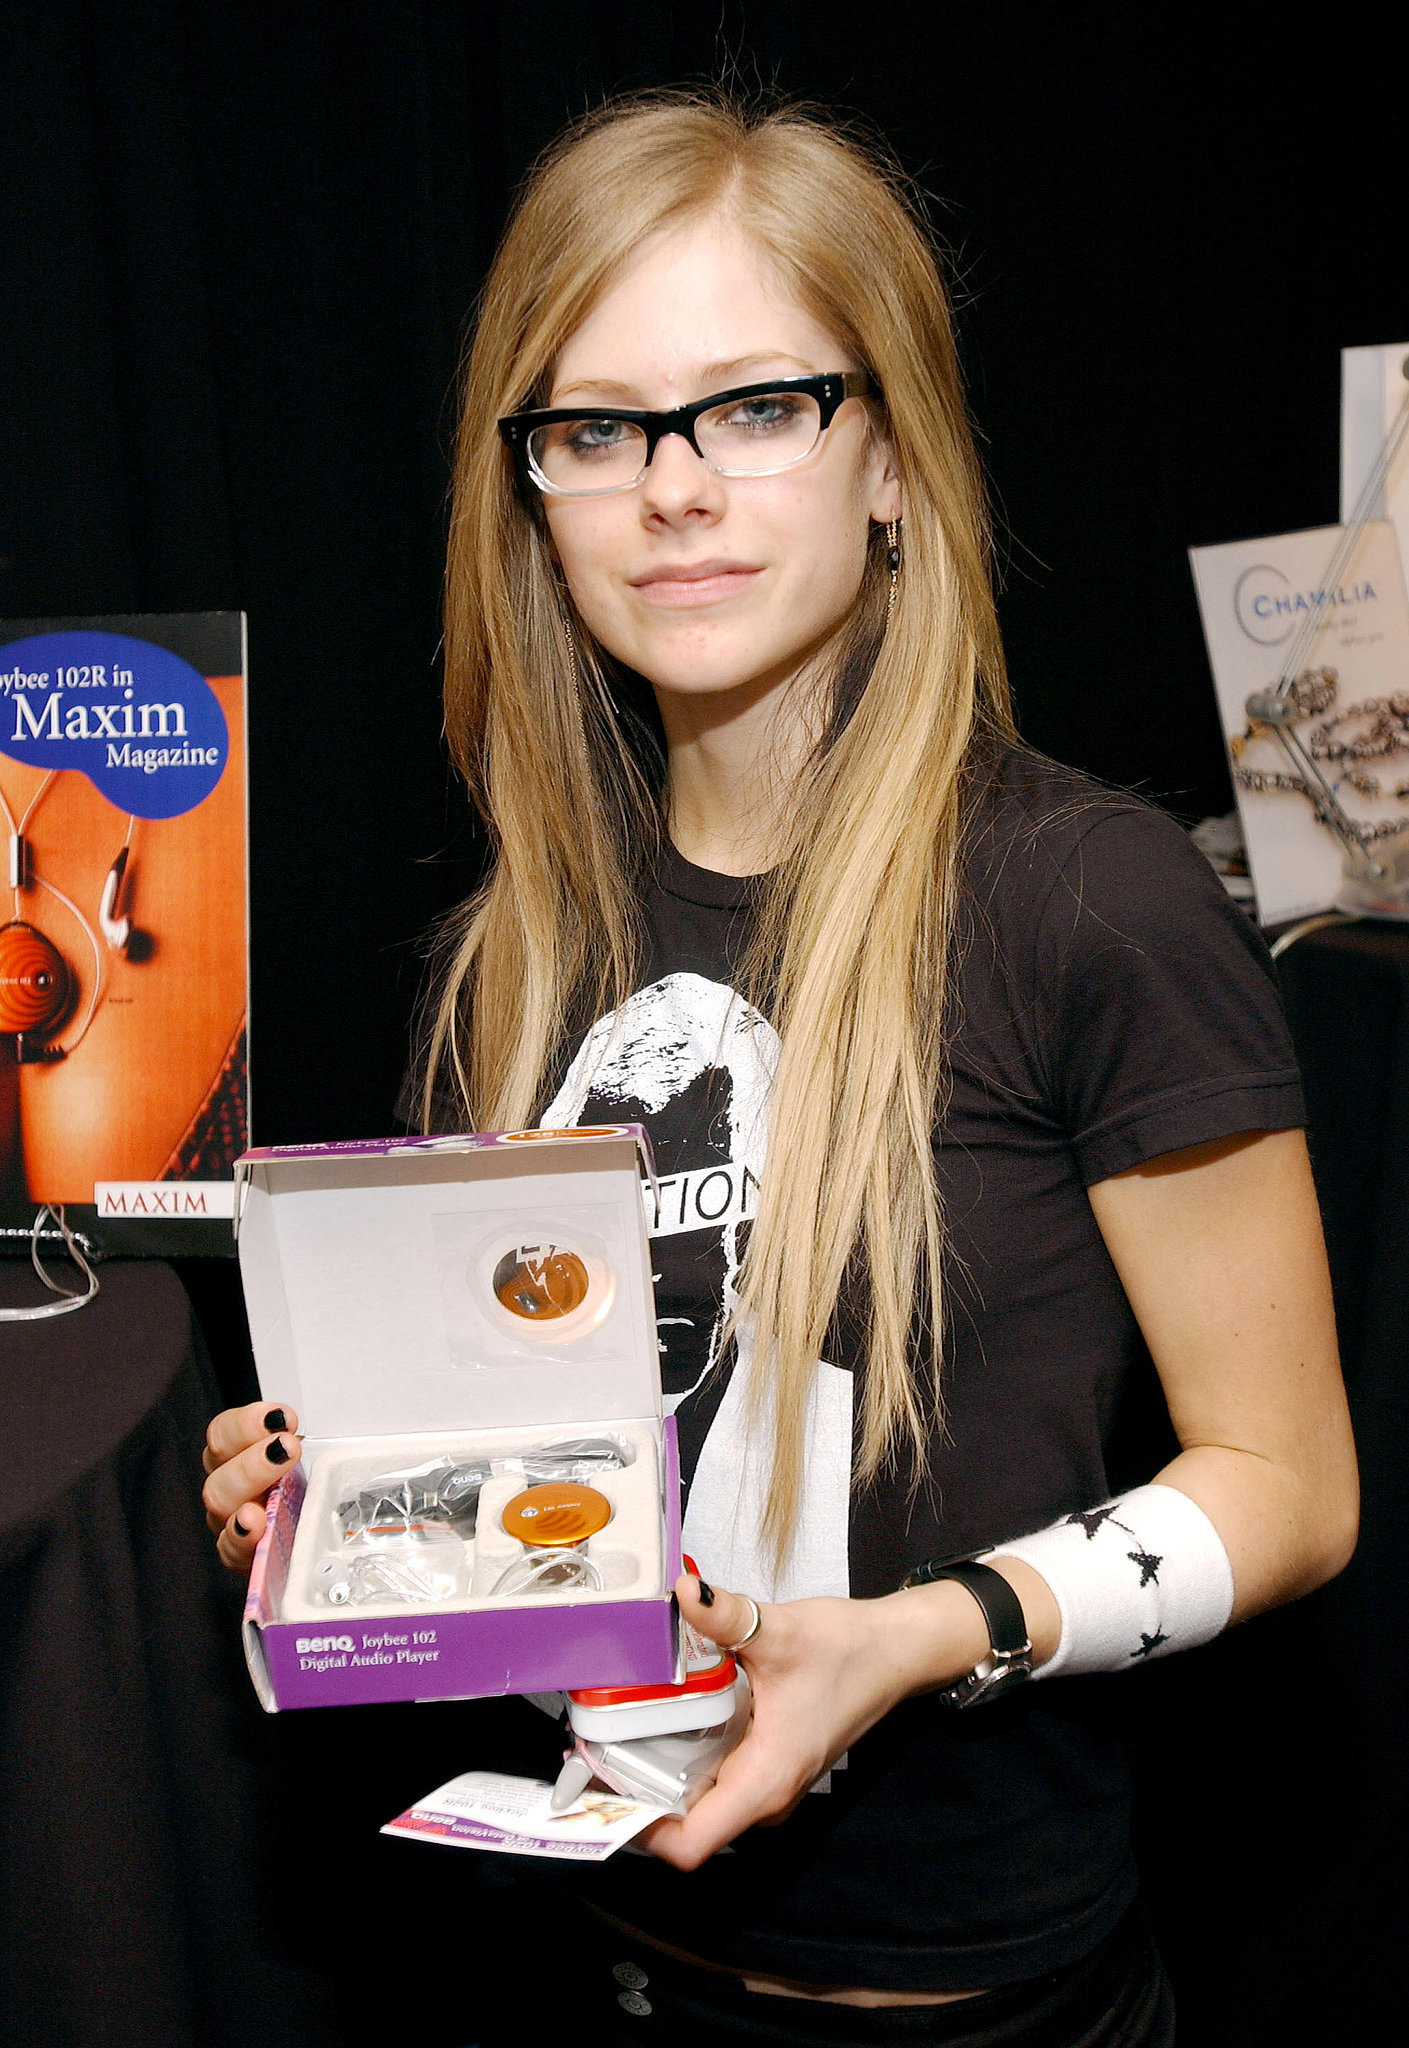 """Avril Lavigne thinks, """"IDGAF about this Joybee 102R MP3 Player,"""" in 2004."""